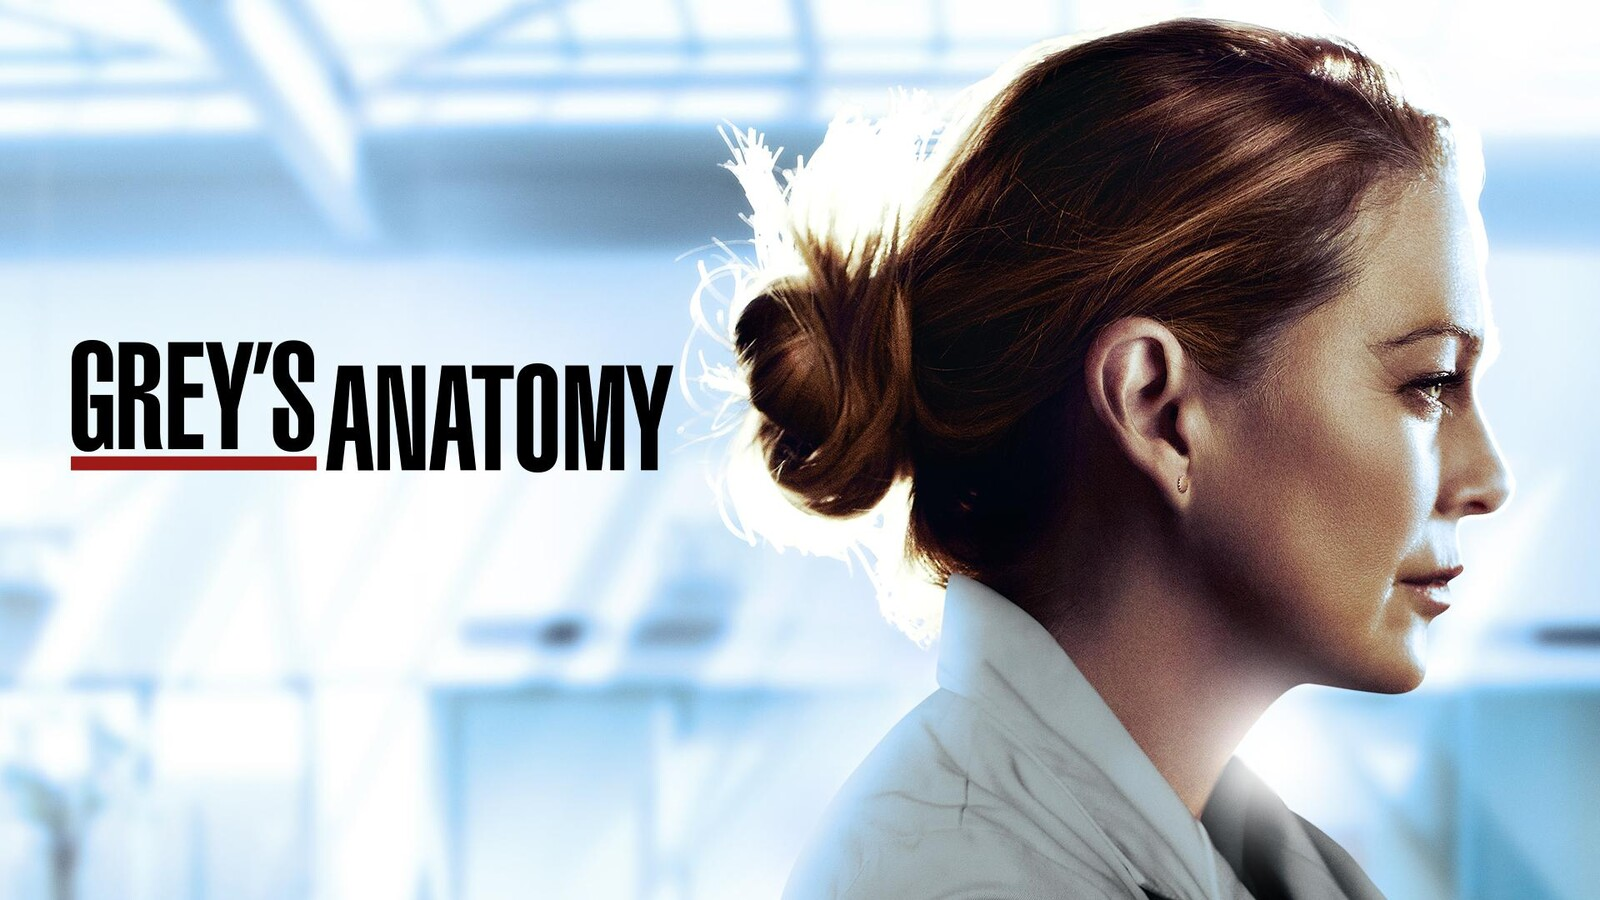 Grey's Anatomy Season 17 Returns With a Shocking Surprise For Fans